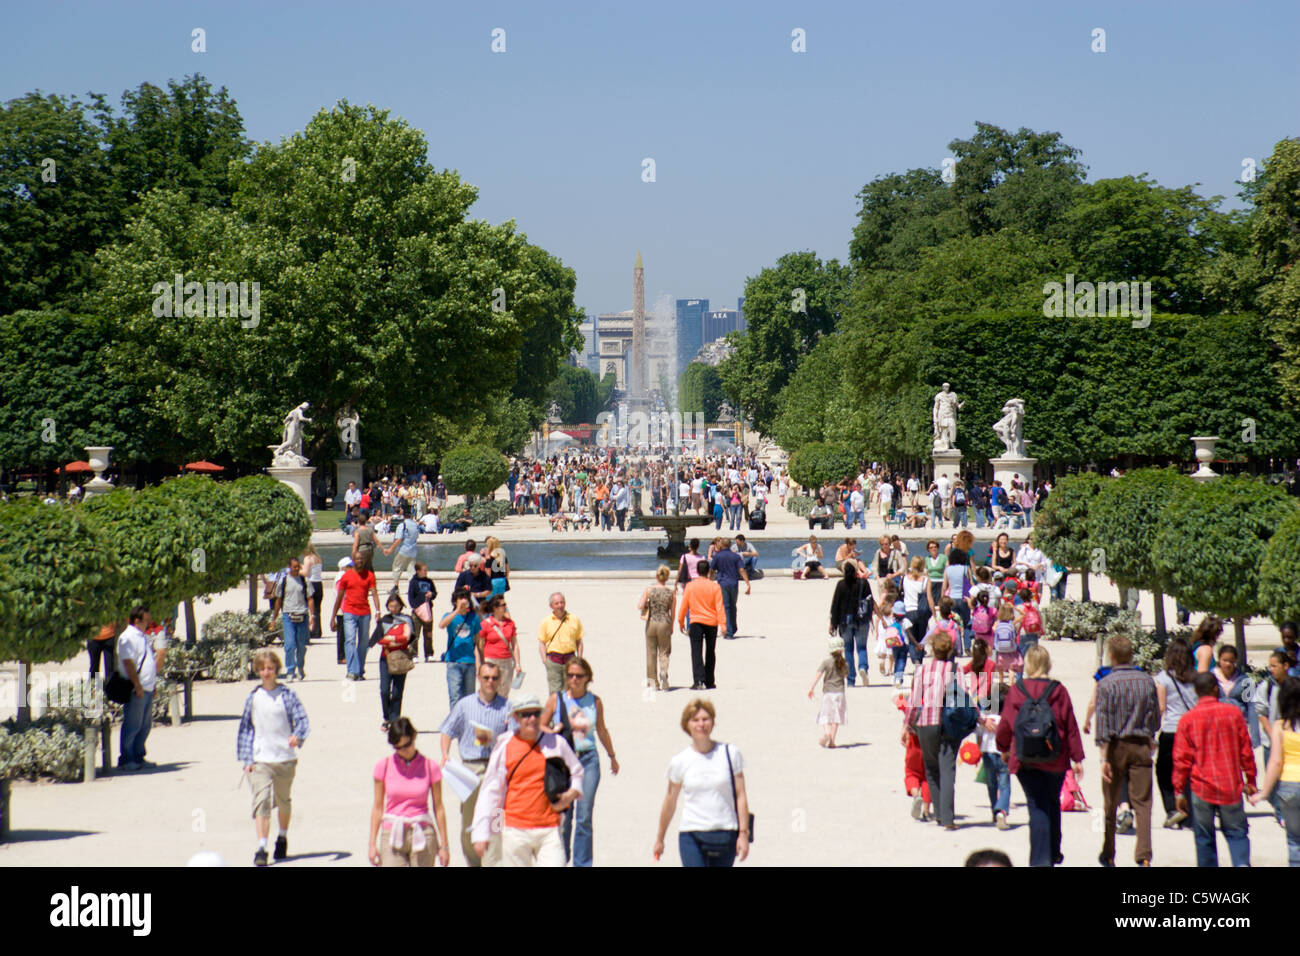 France, Paris, Jardin des Tuilleries, tourists in foreground Stock Photo